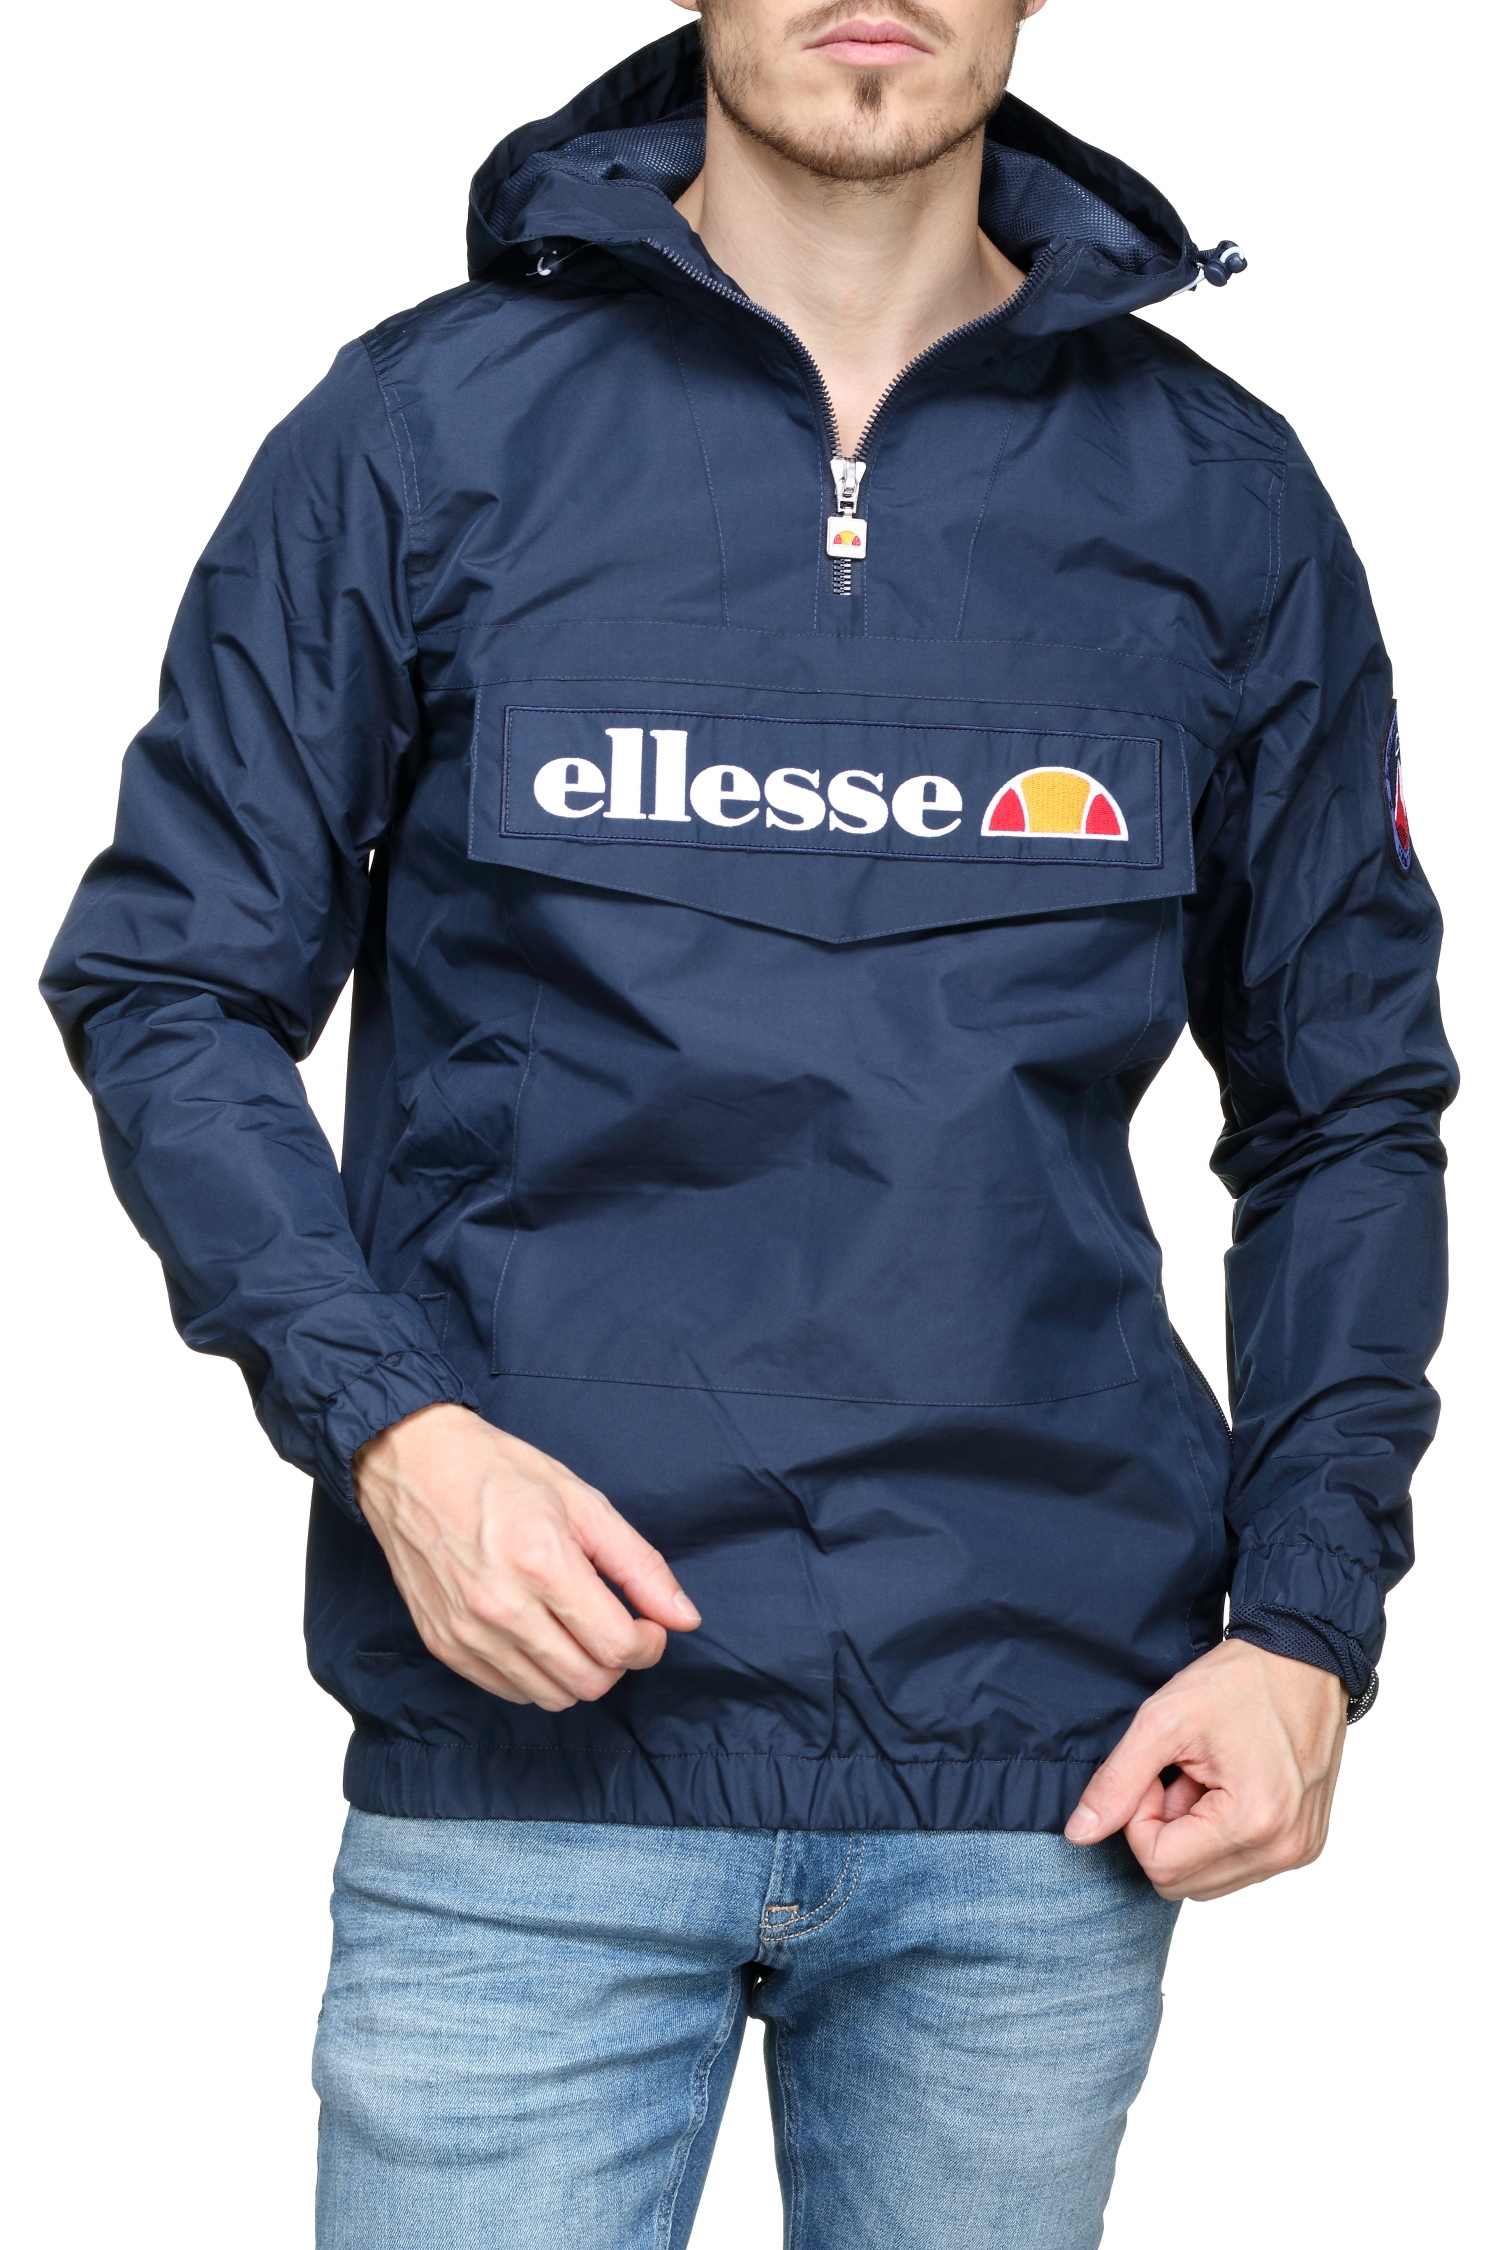 https://www.leadermode.com/180556/ellesse-mont-2-oh-jacket-navy.jpg